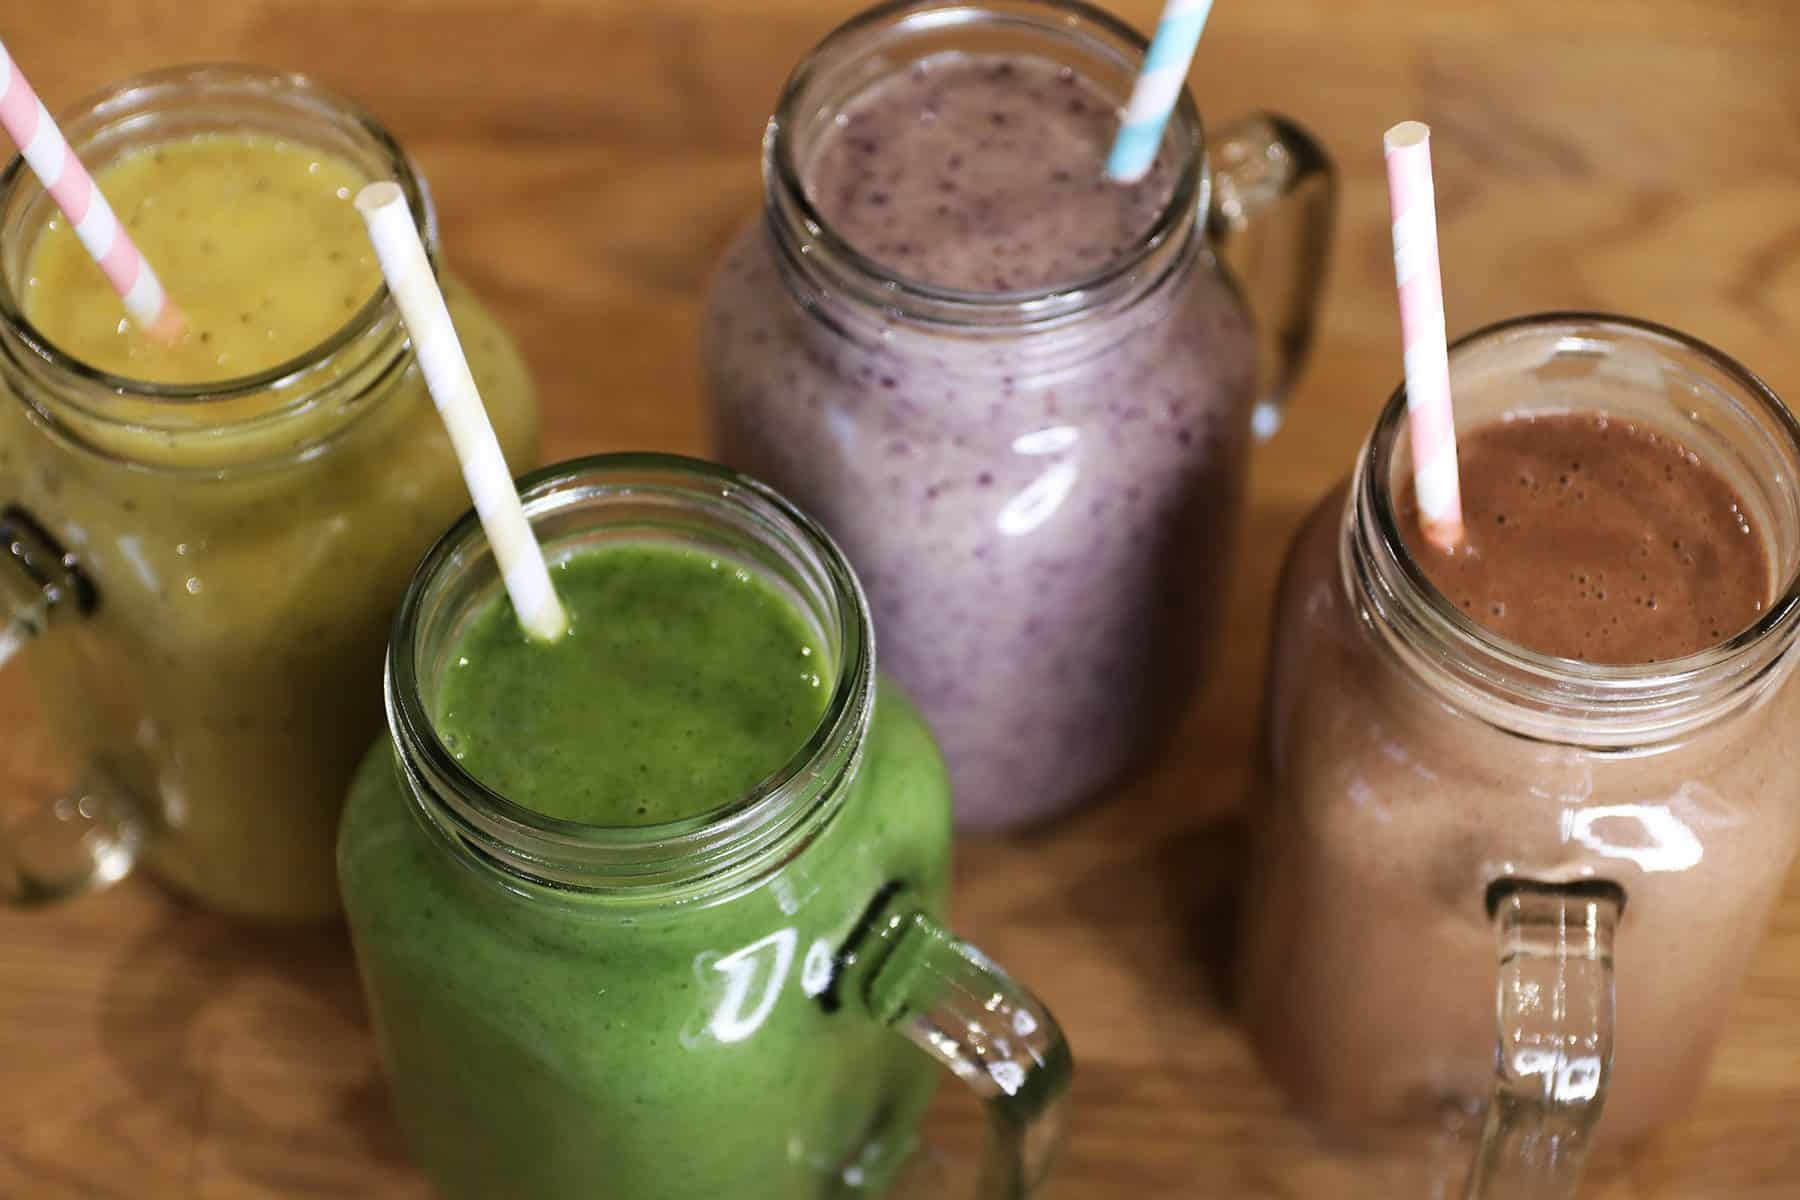 My 4 Healthy Smoothie Recipes – Green Smoothie, Turmeric Smoothie, Post Workout Smoothie, Breakfast Smoothie